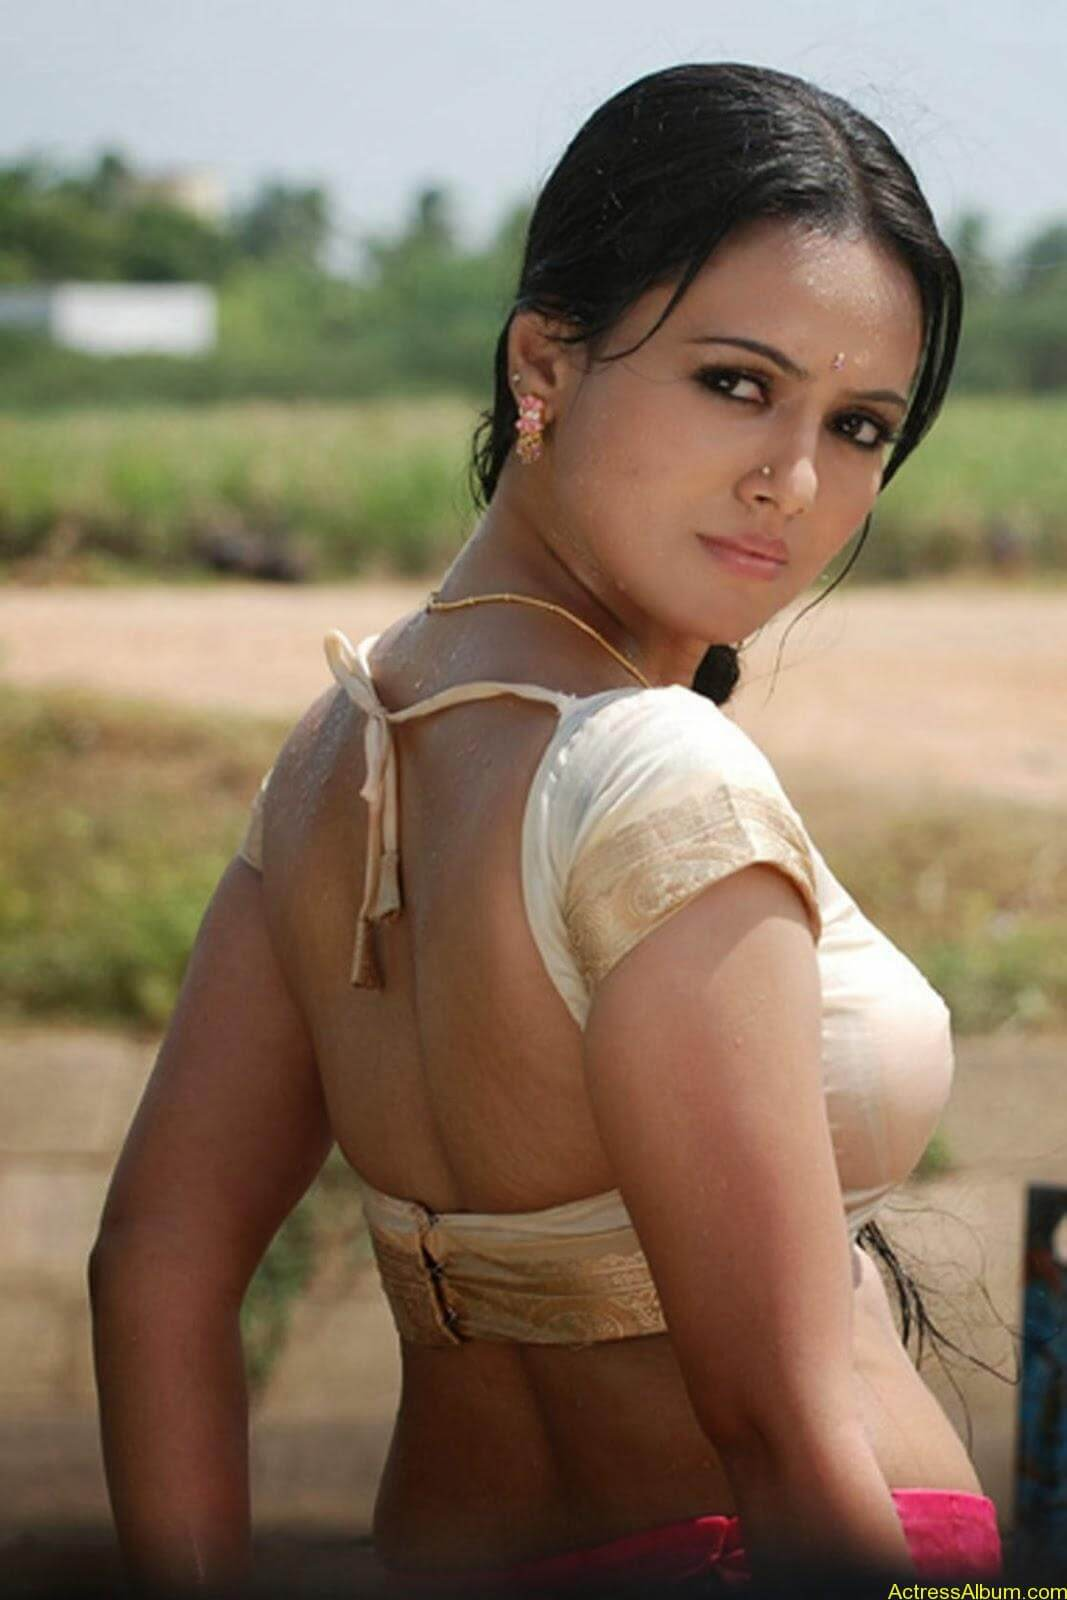 sana khan wet blouse.jpg